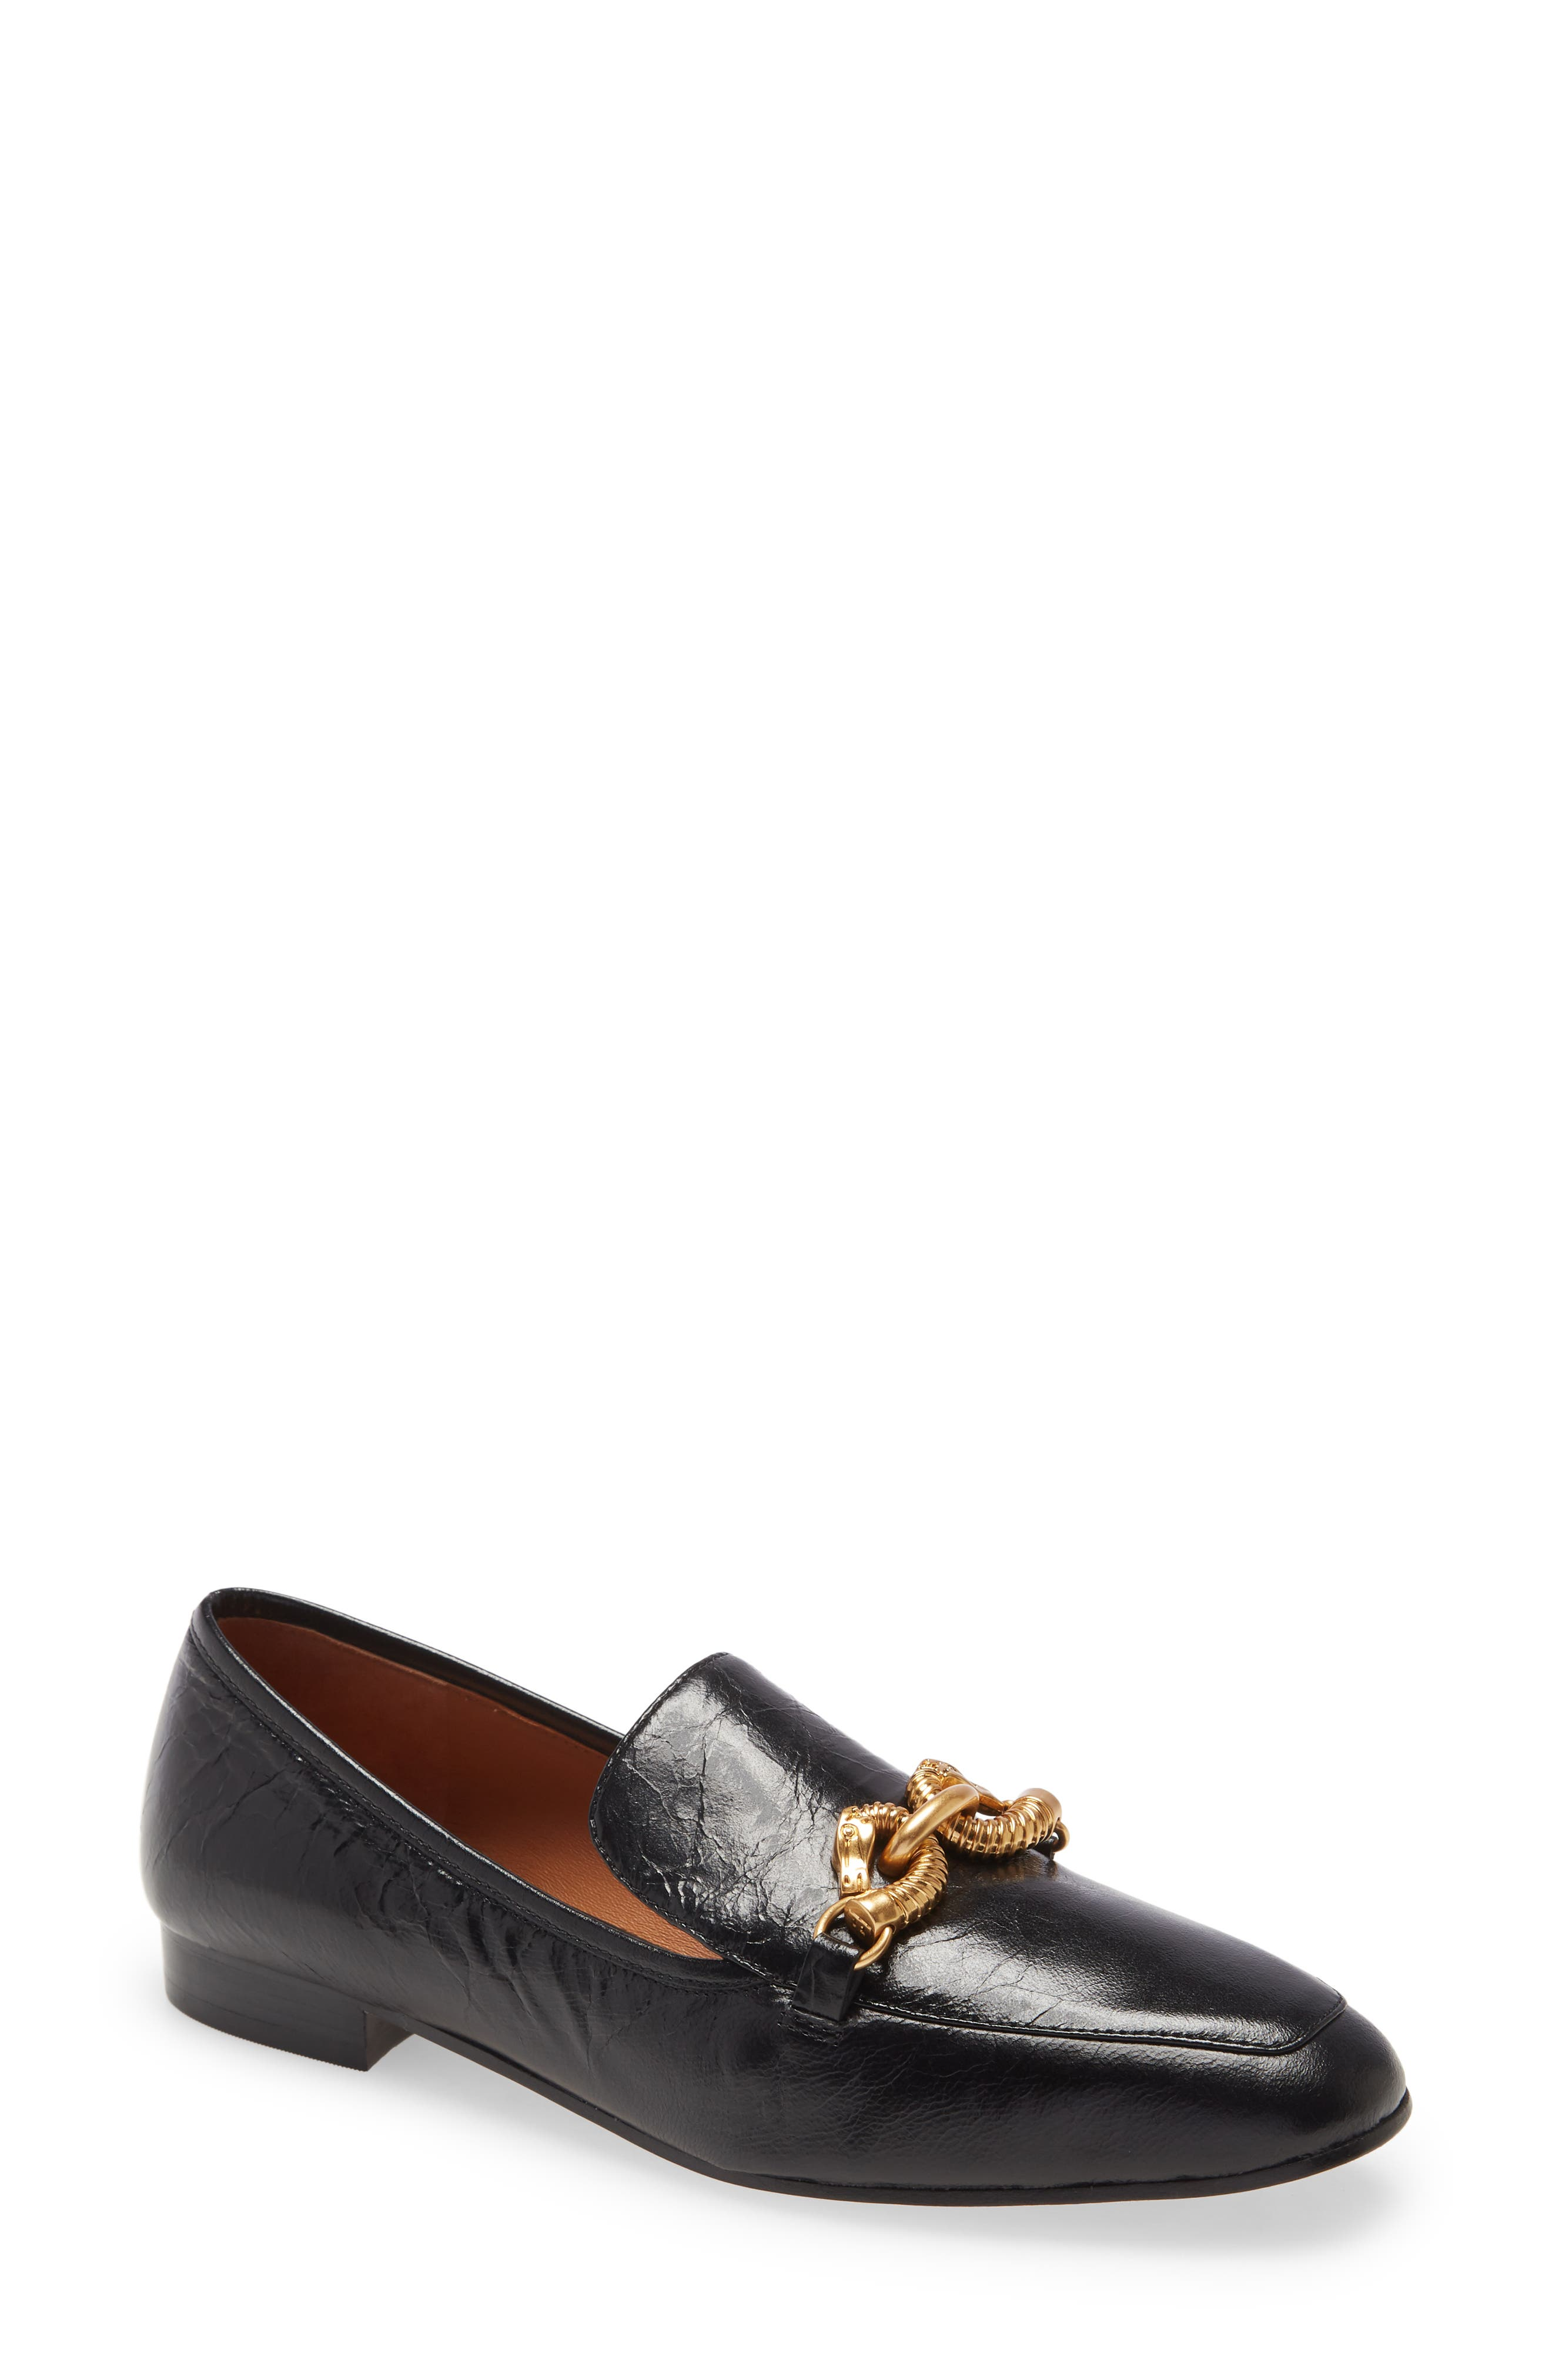 tory burch loafers sale